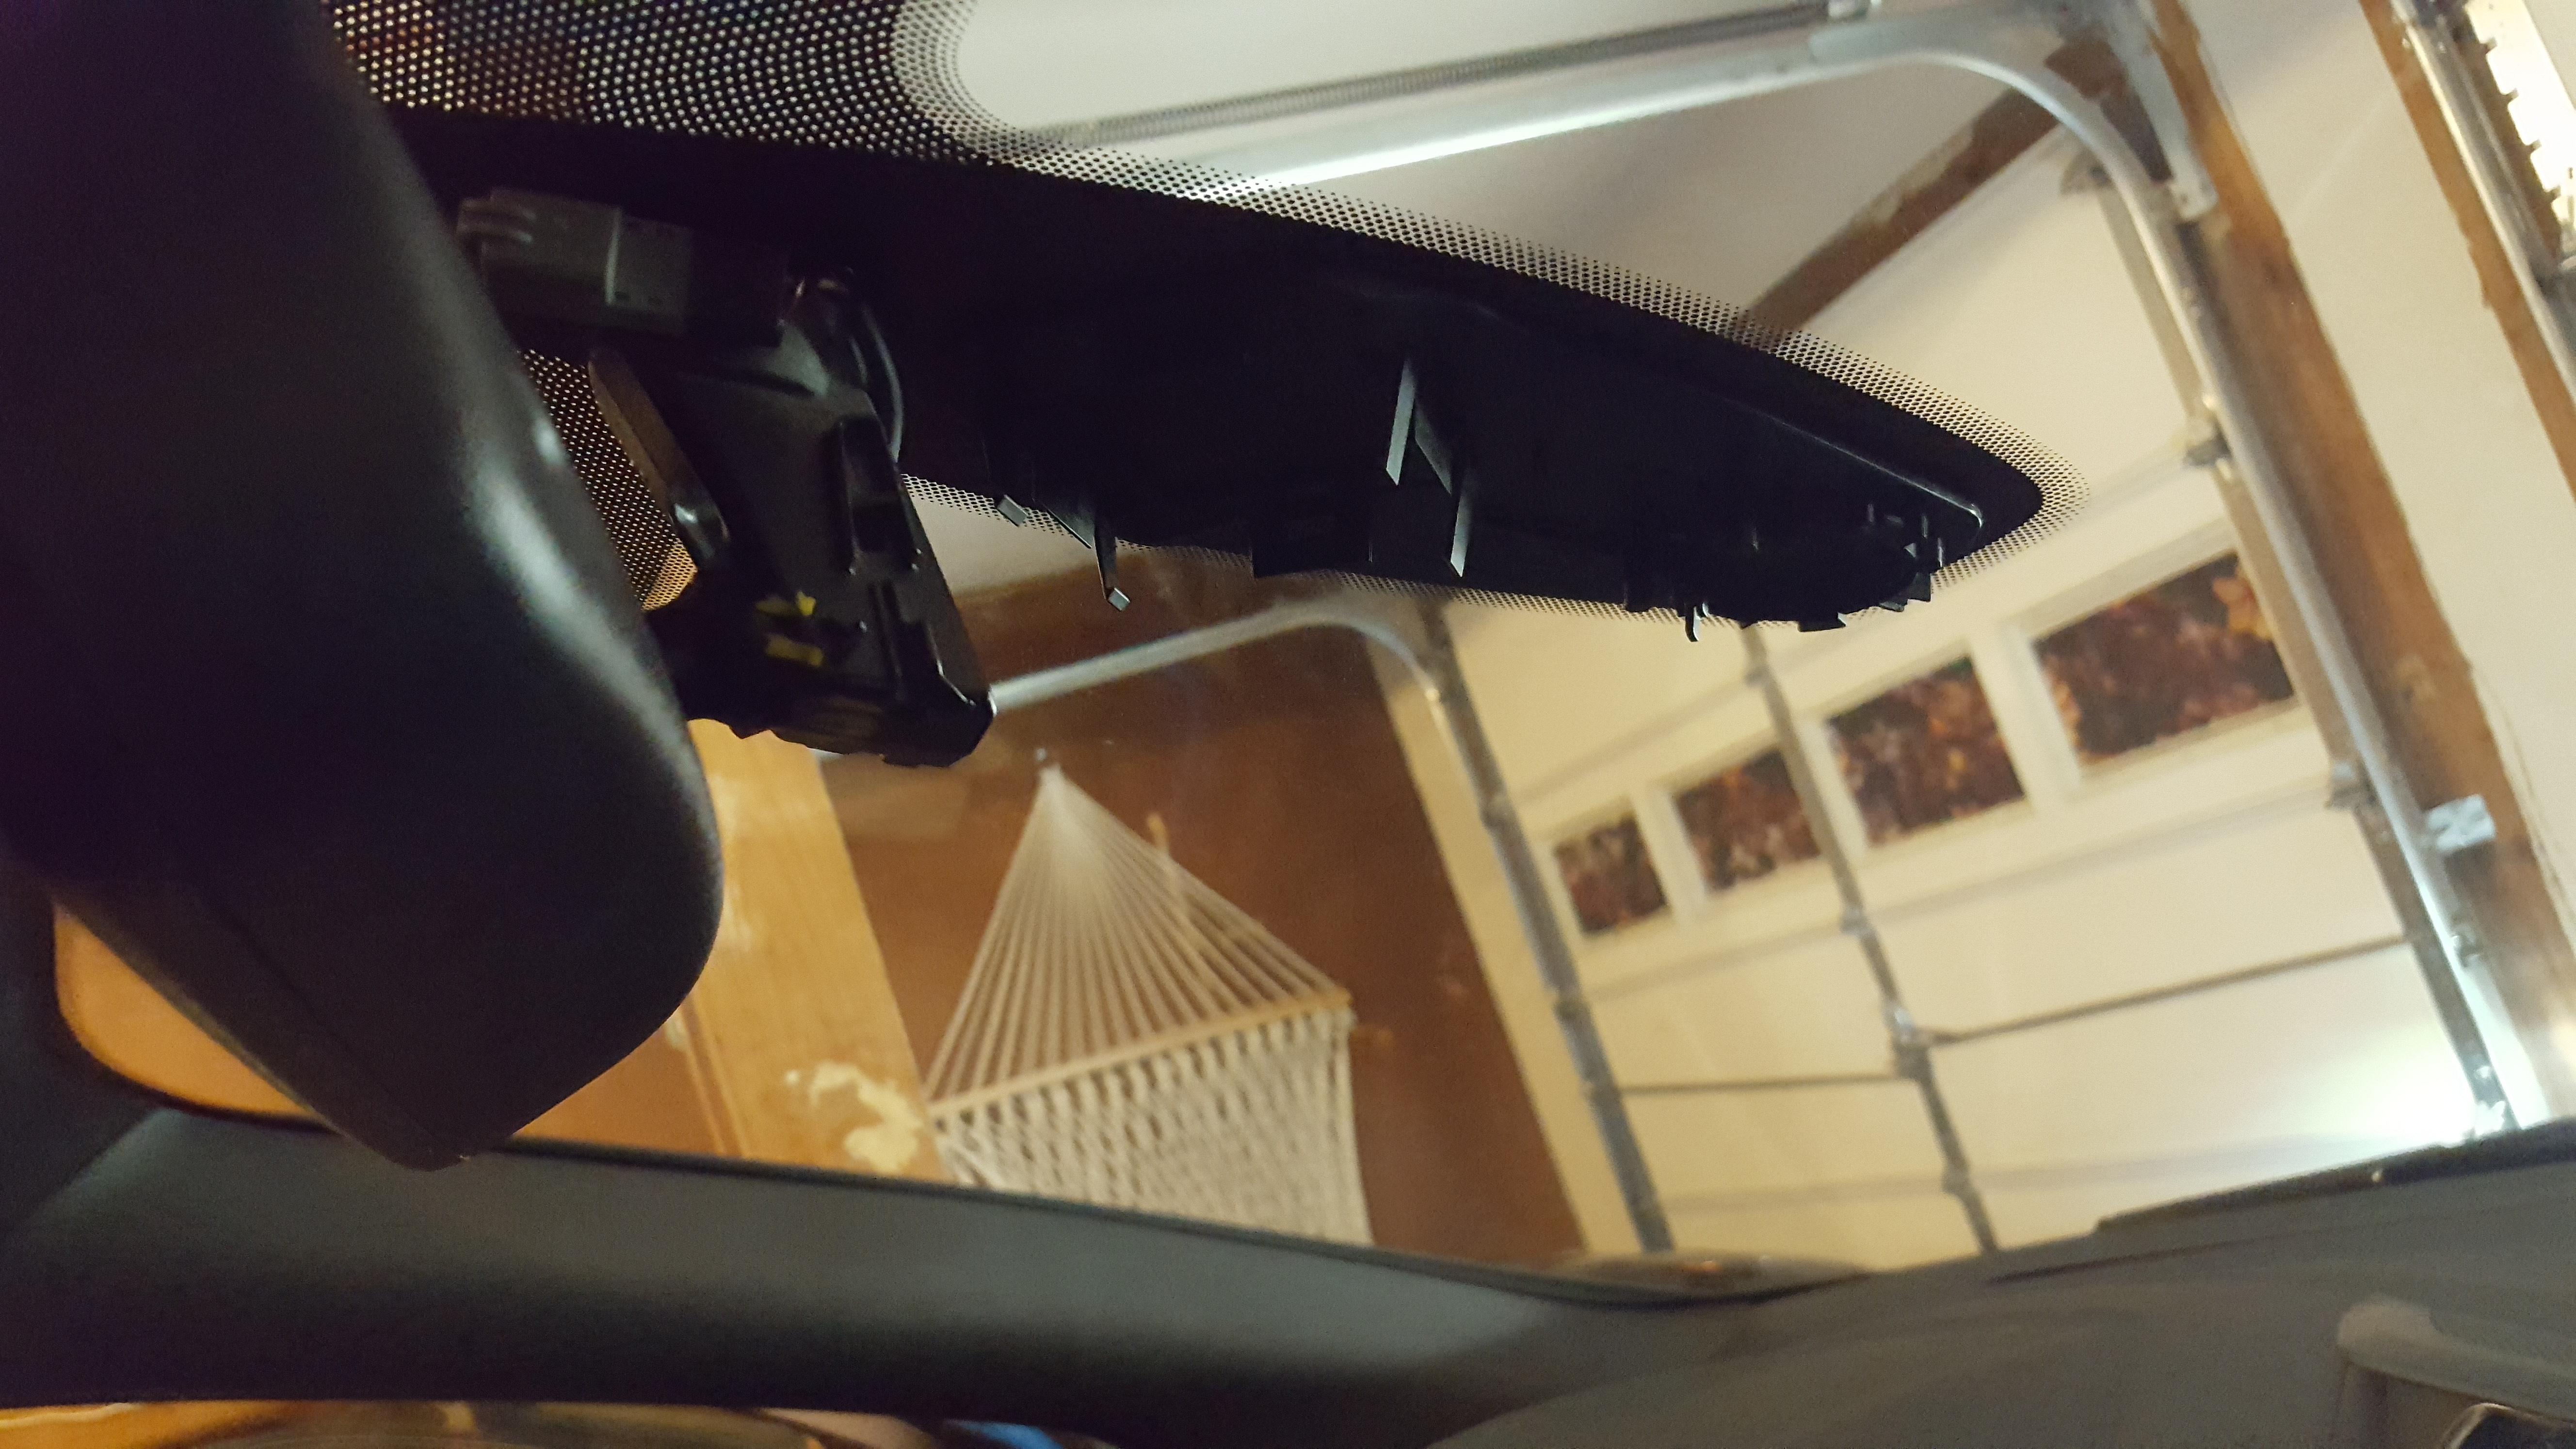 FoMoCo auto dimming rear view mirror install